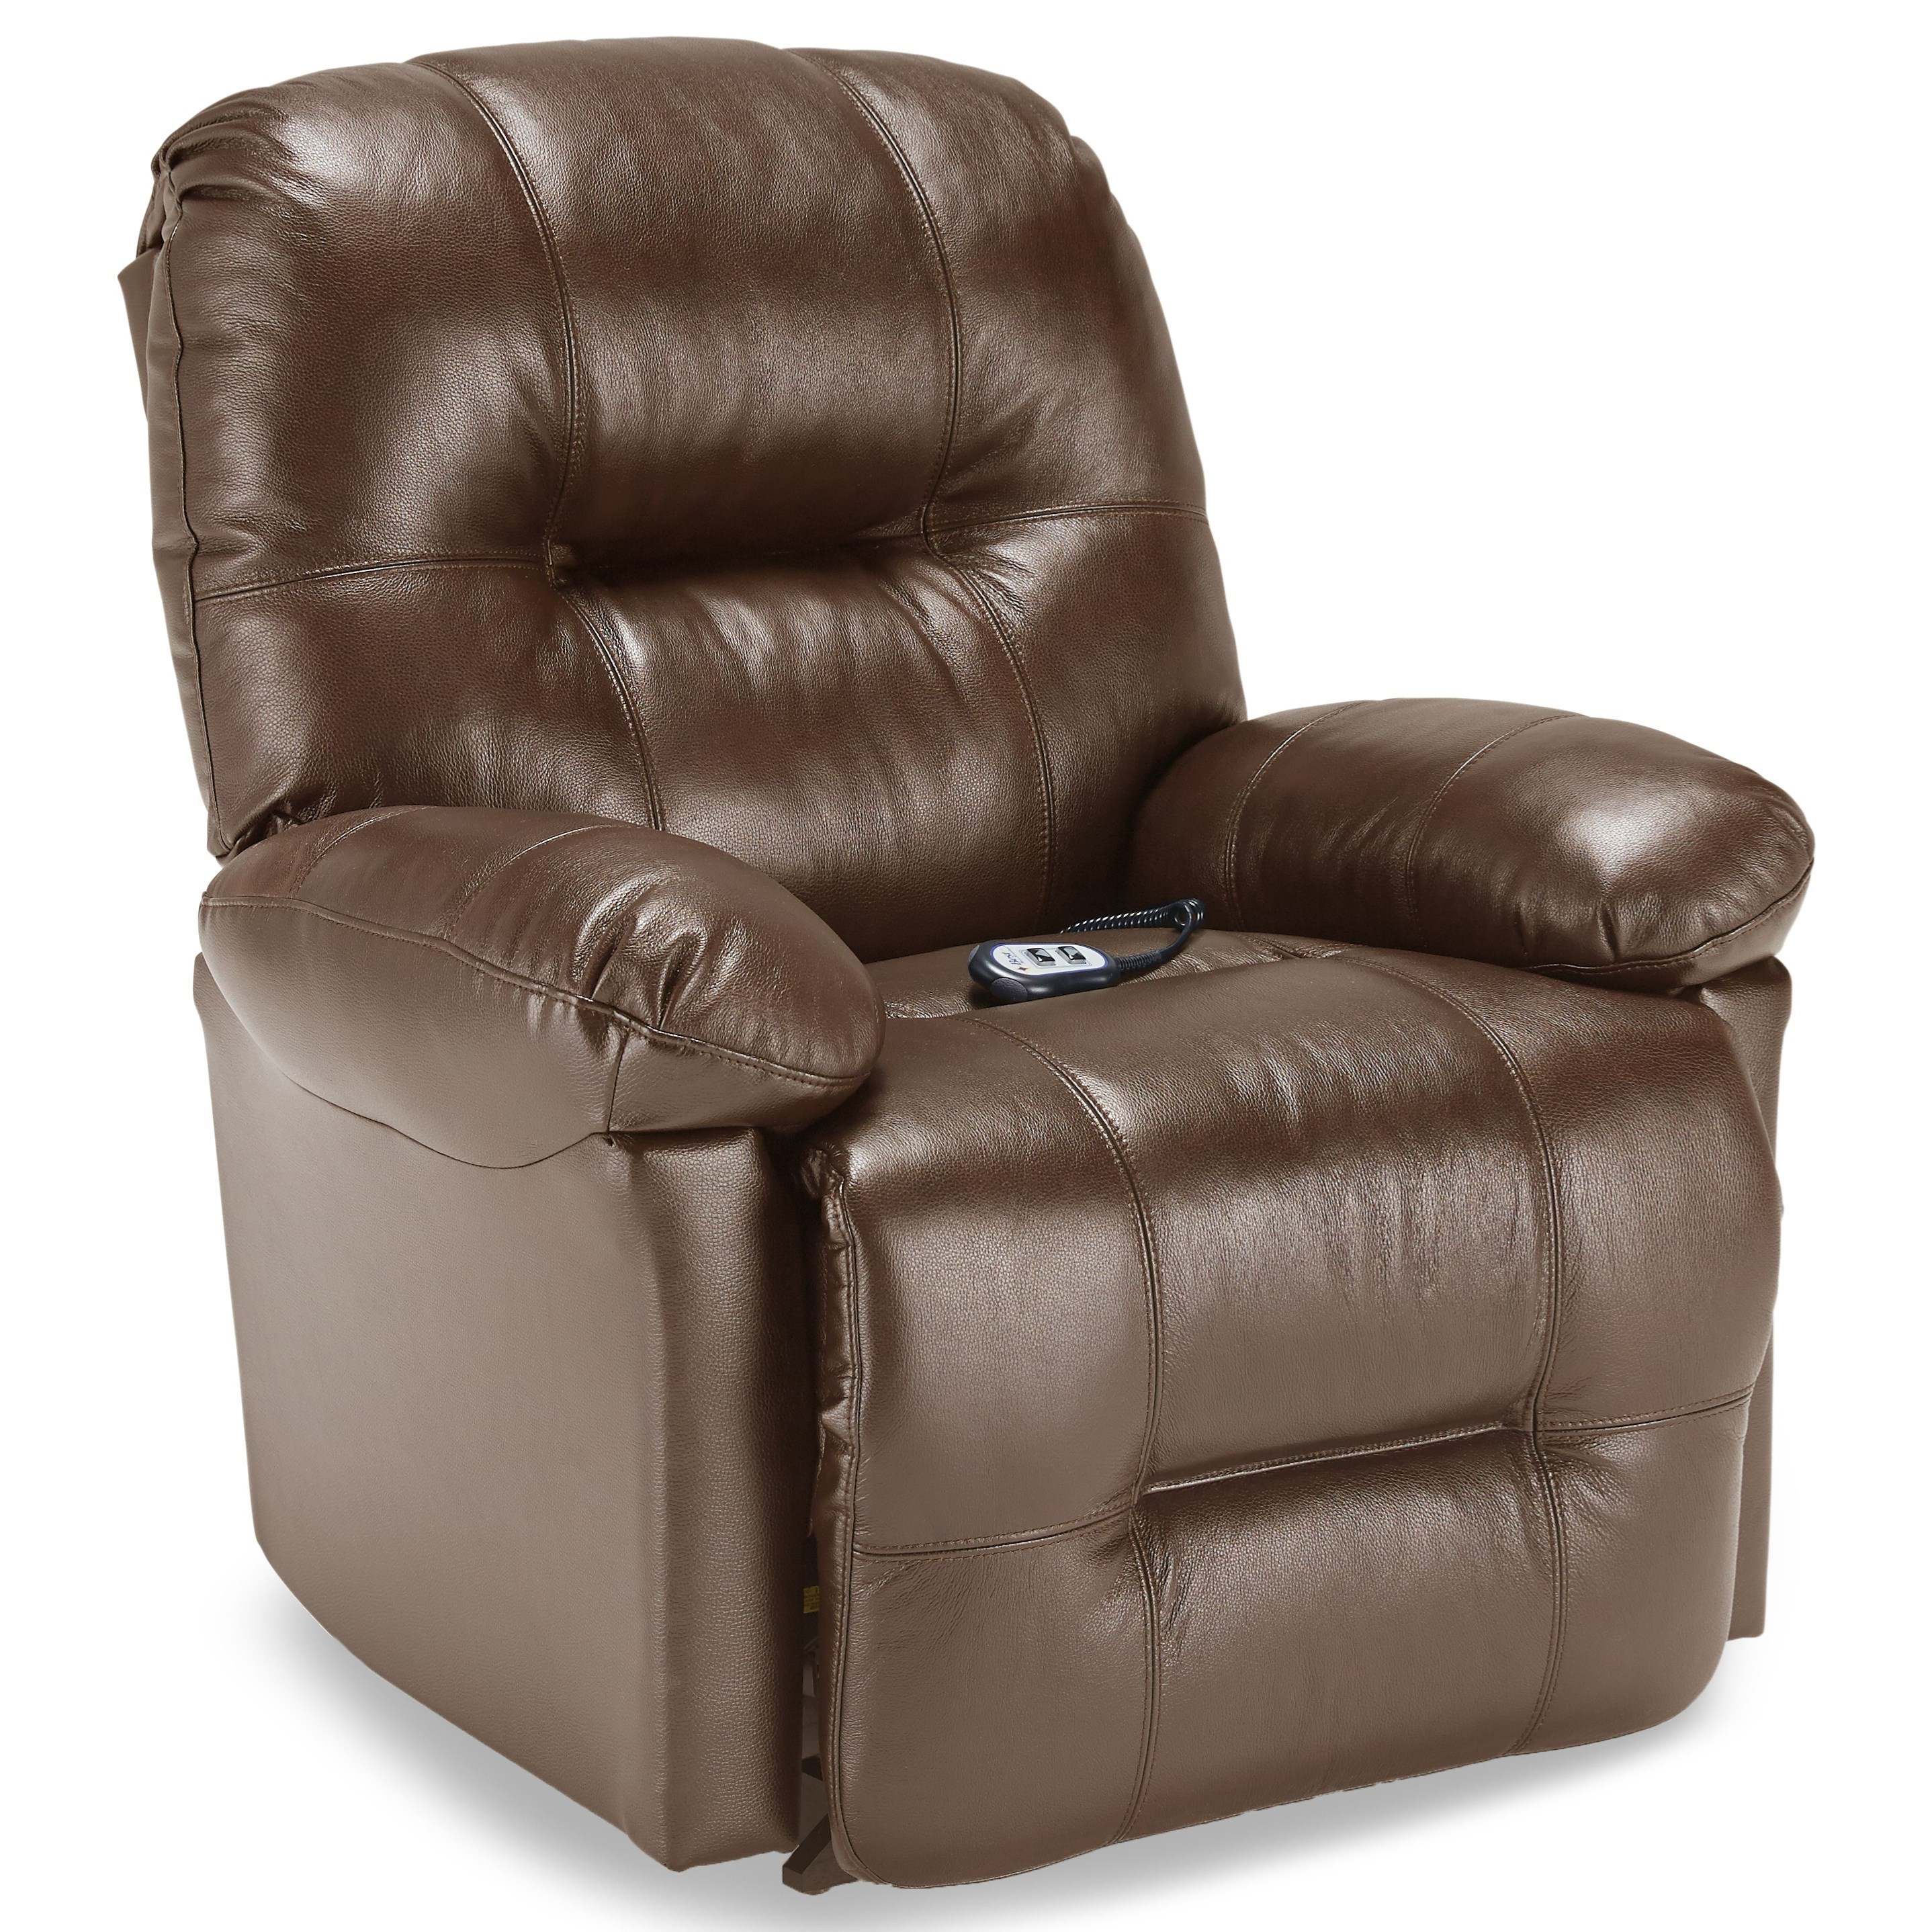 S501 Zaynah Power Wallhugger Recliner by Best Home Furnishings at Gill Brothers Furniture